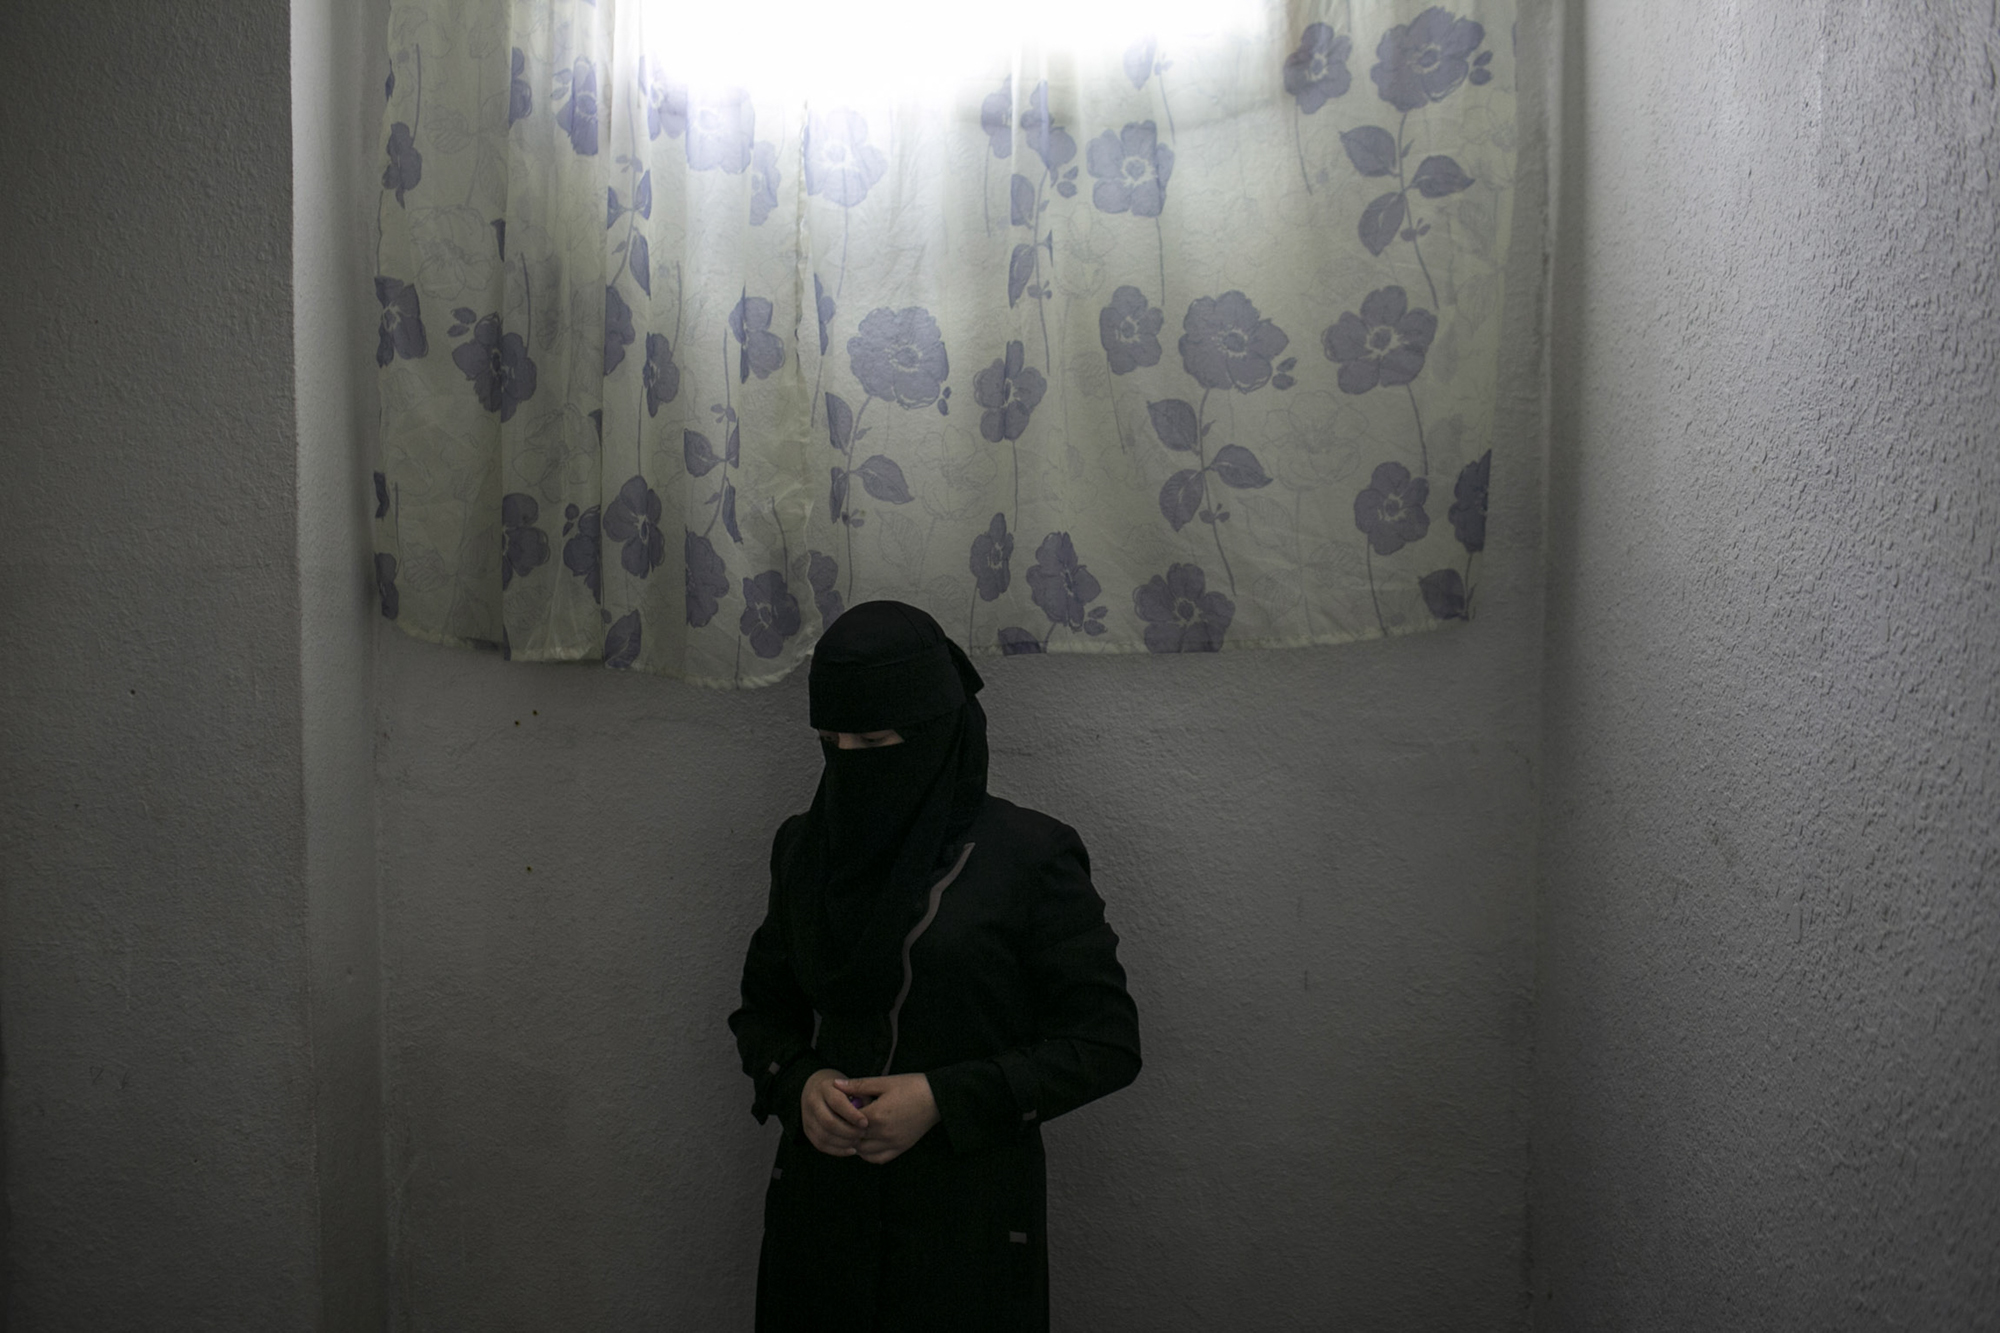 Jordan, 2013, Samira, a 22 year old female head of house hold with four young children.  She fled Homs with her small children, while her husband insisted on staying to look after their home and assets. She learned four months ago that her husband had been murdered.